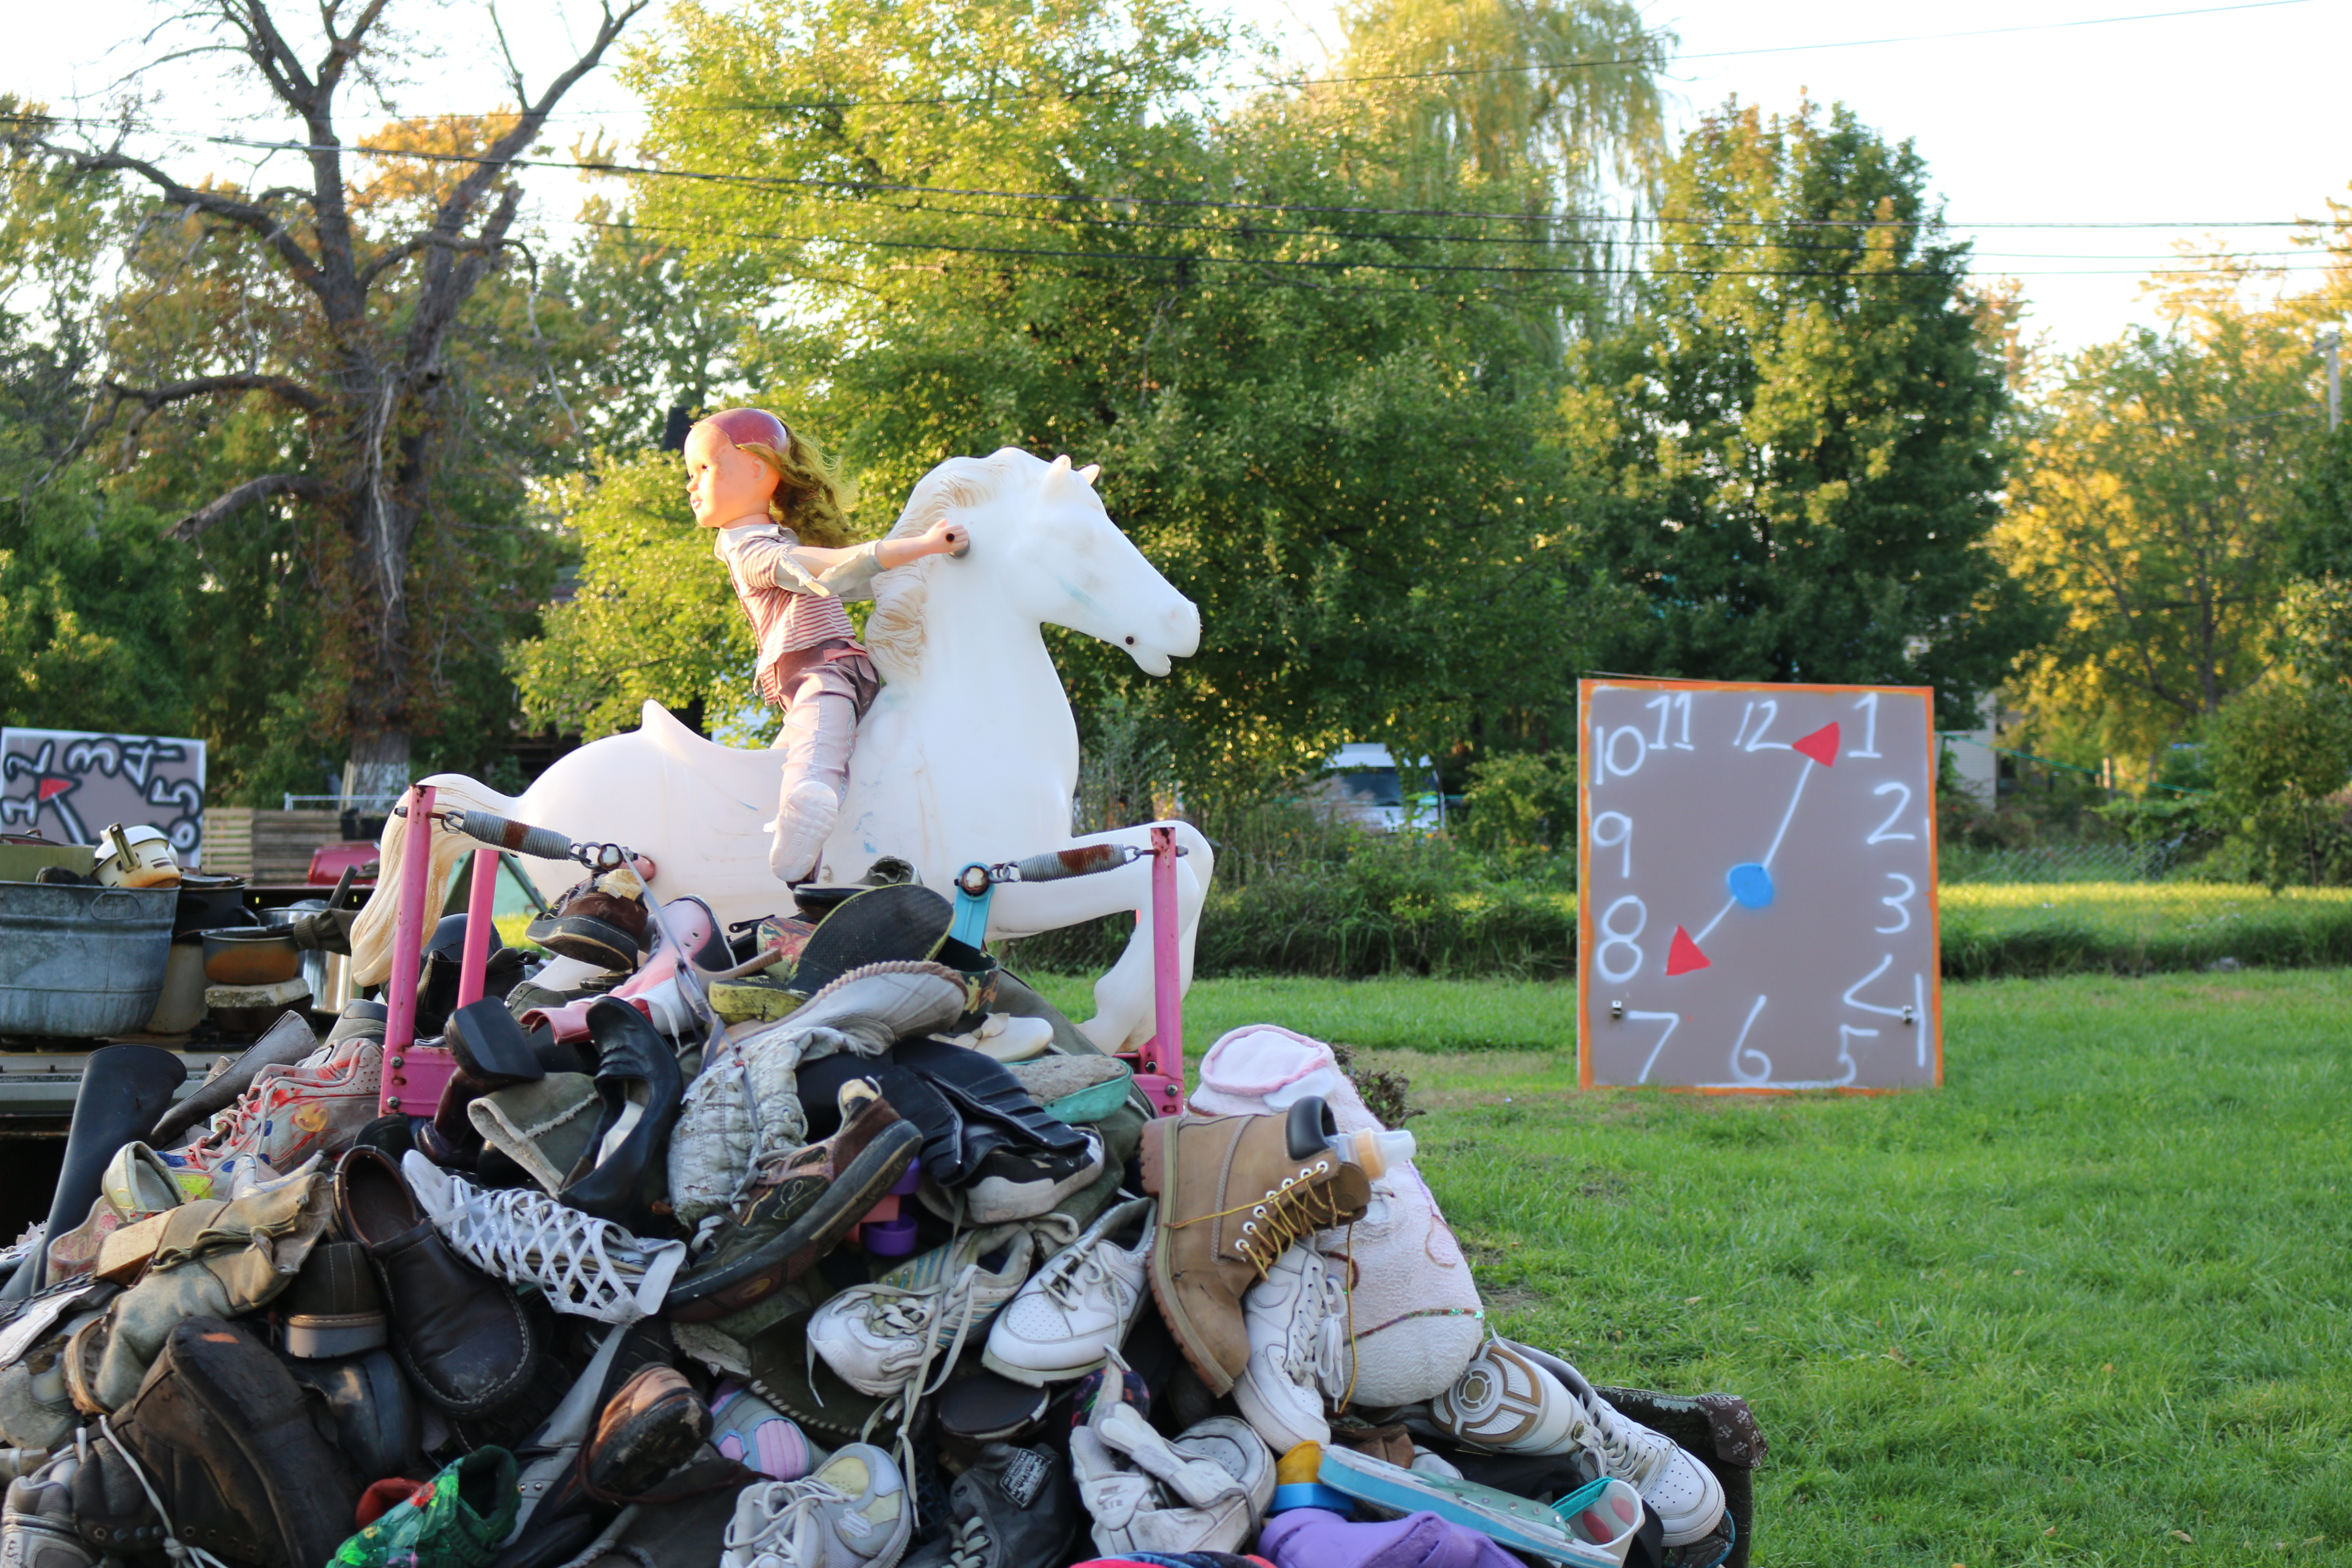 Close up of baby doll riding a white unicorn toy on top of pile of toys.